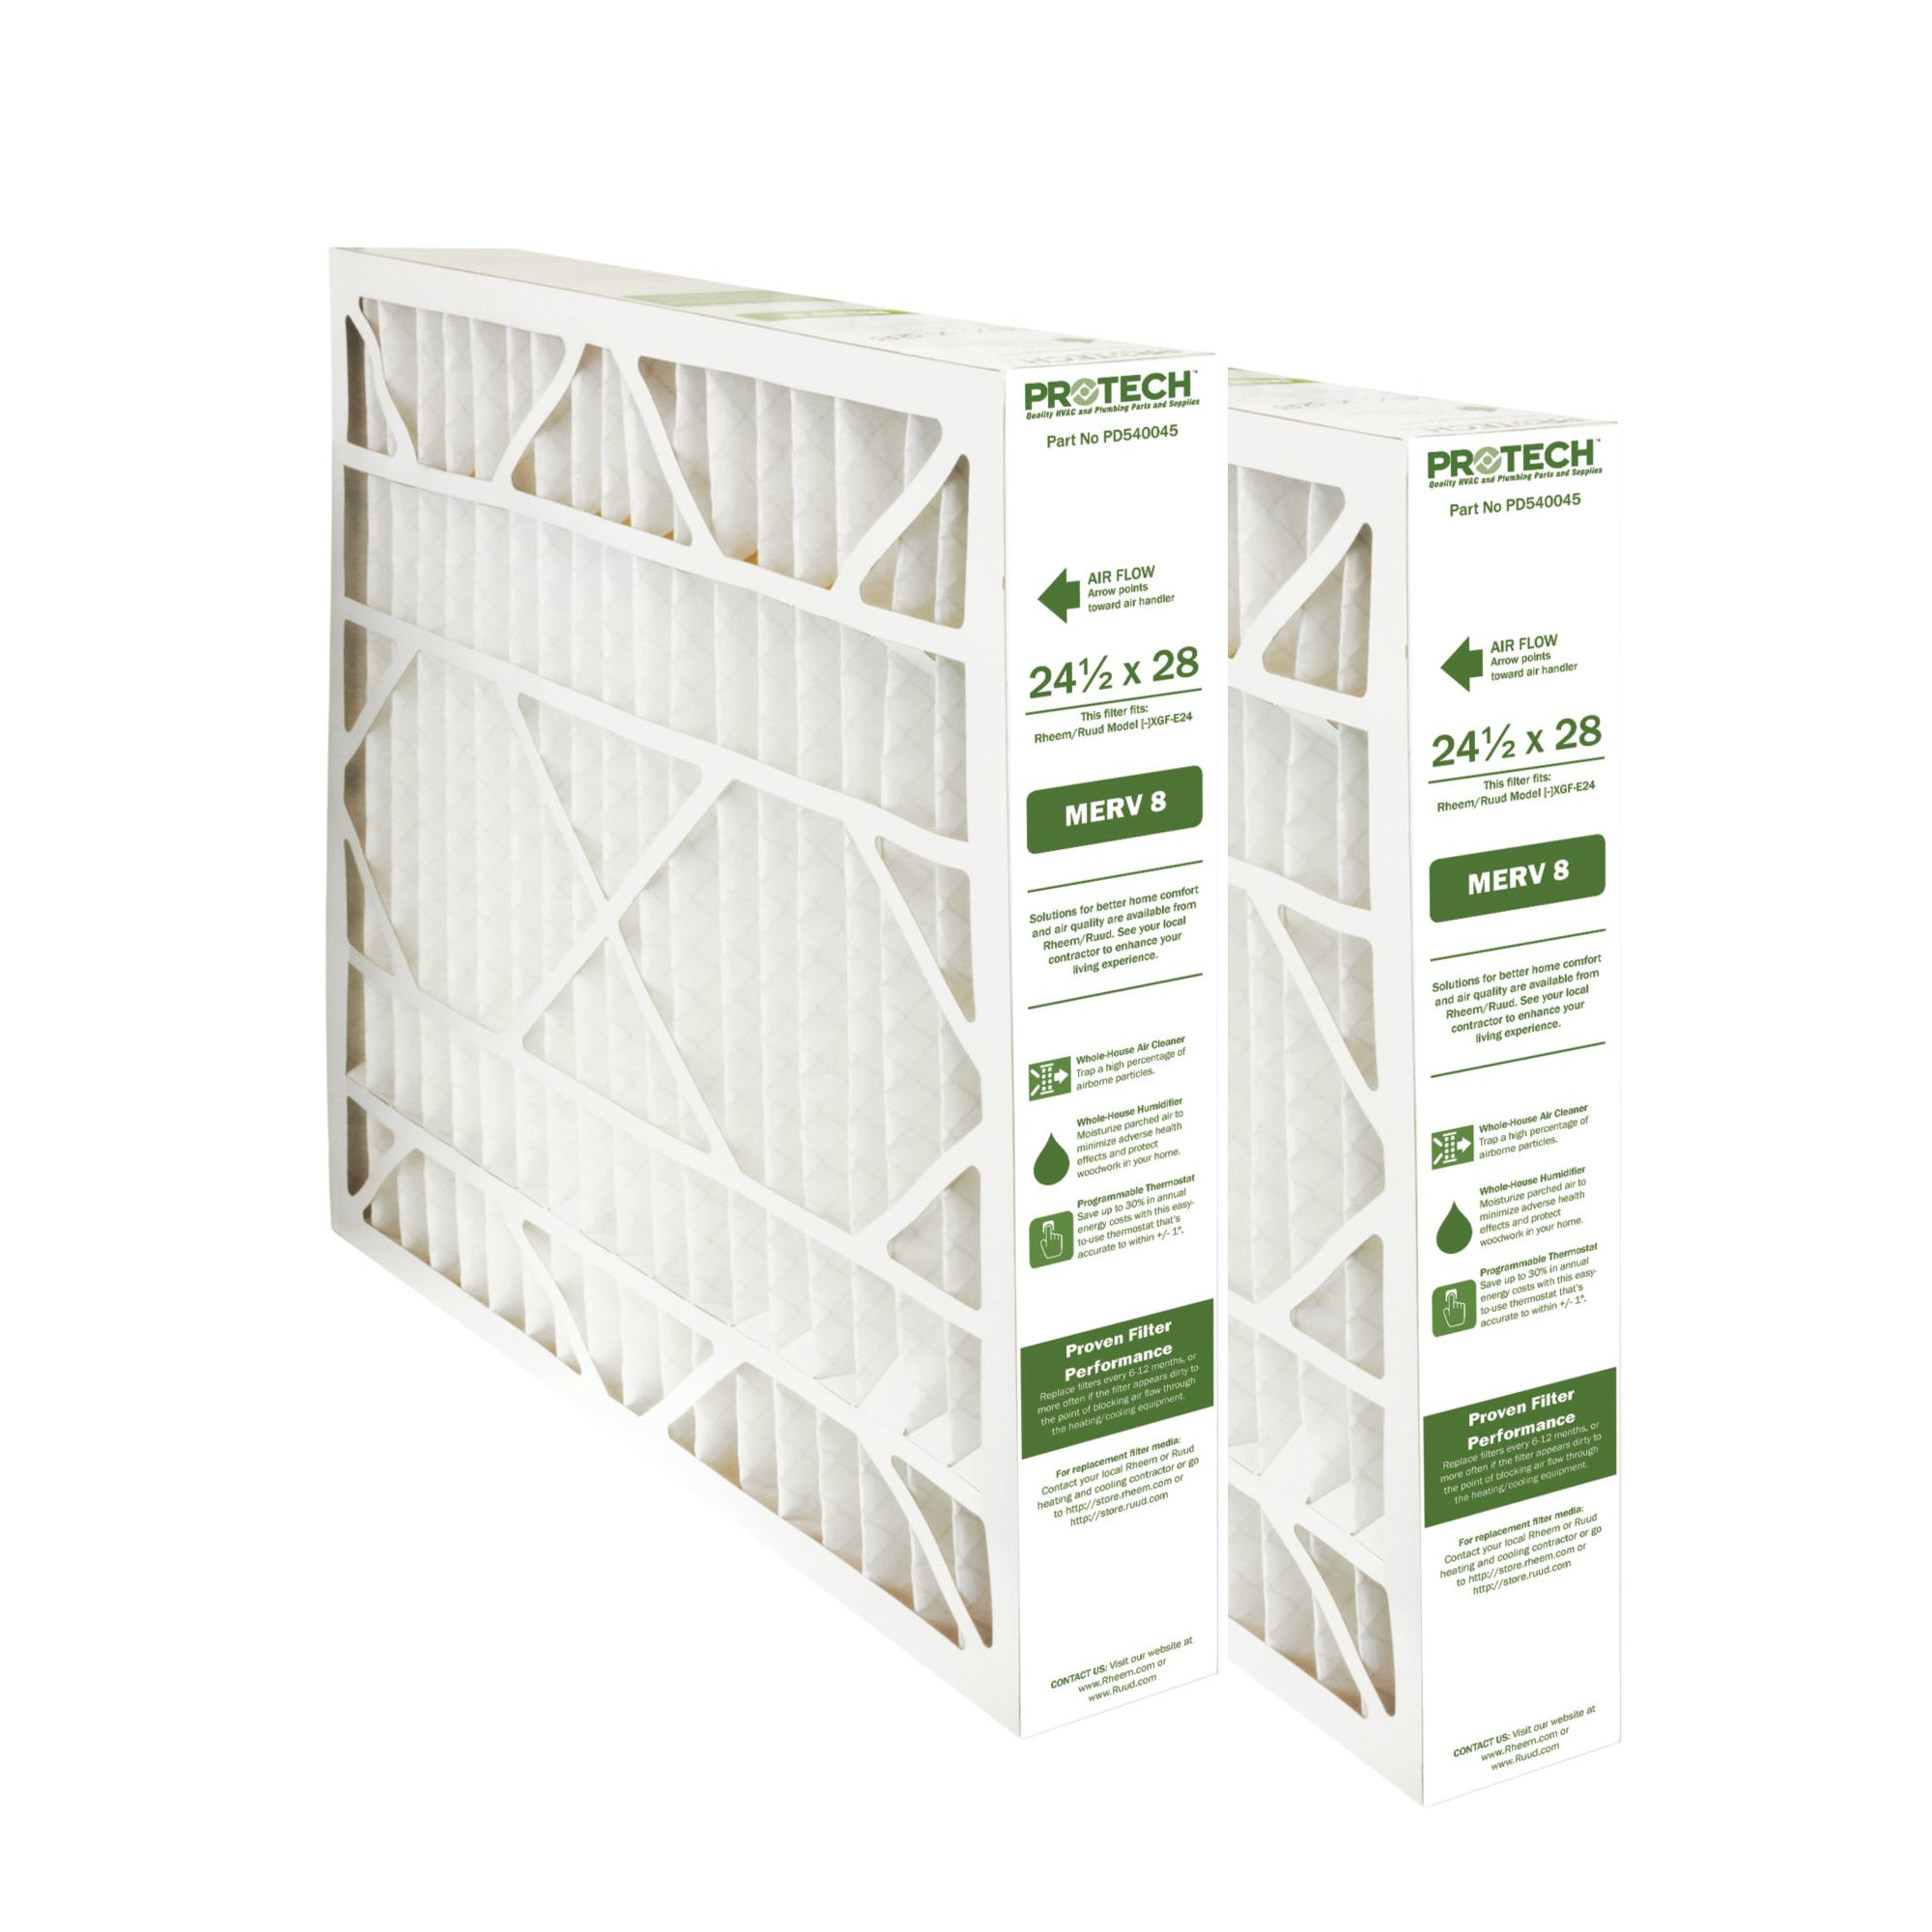 Protech MERV 8 Rheem-Ruud Replacement Filter 540045 2 Pk